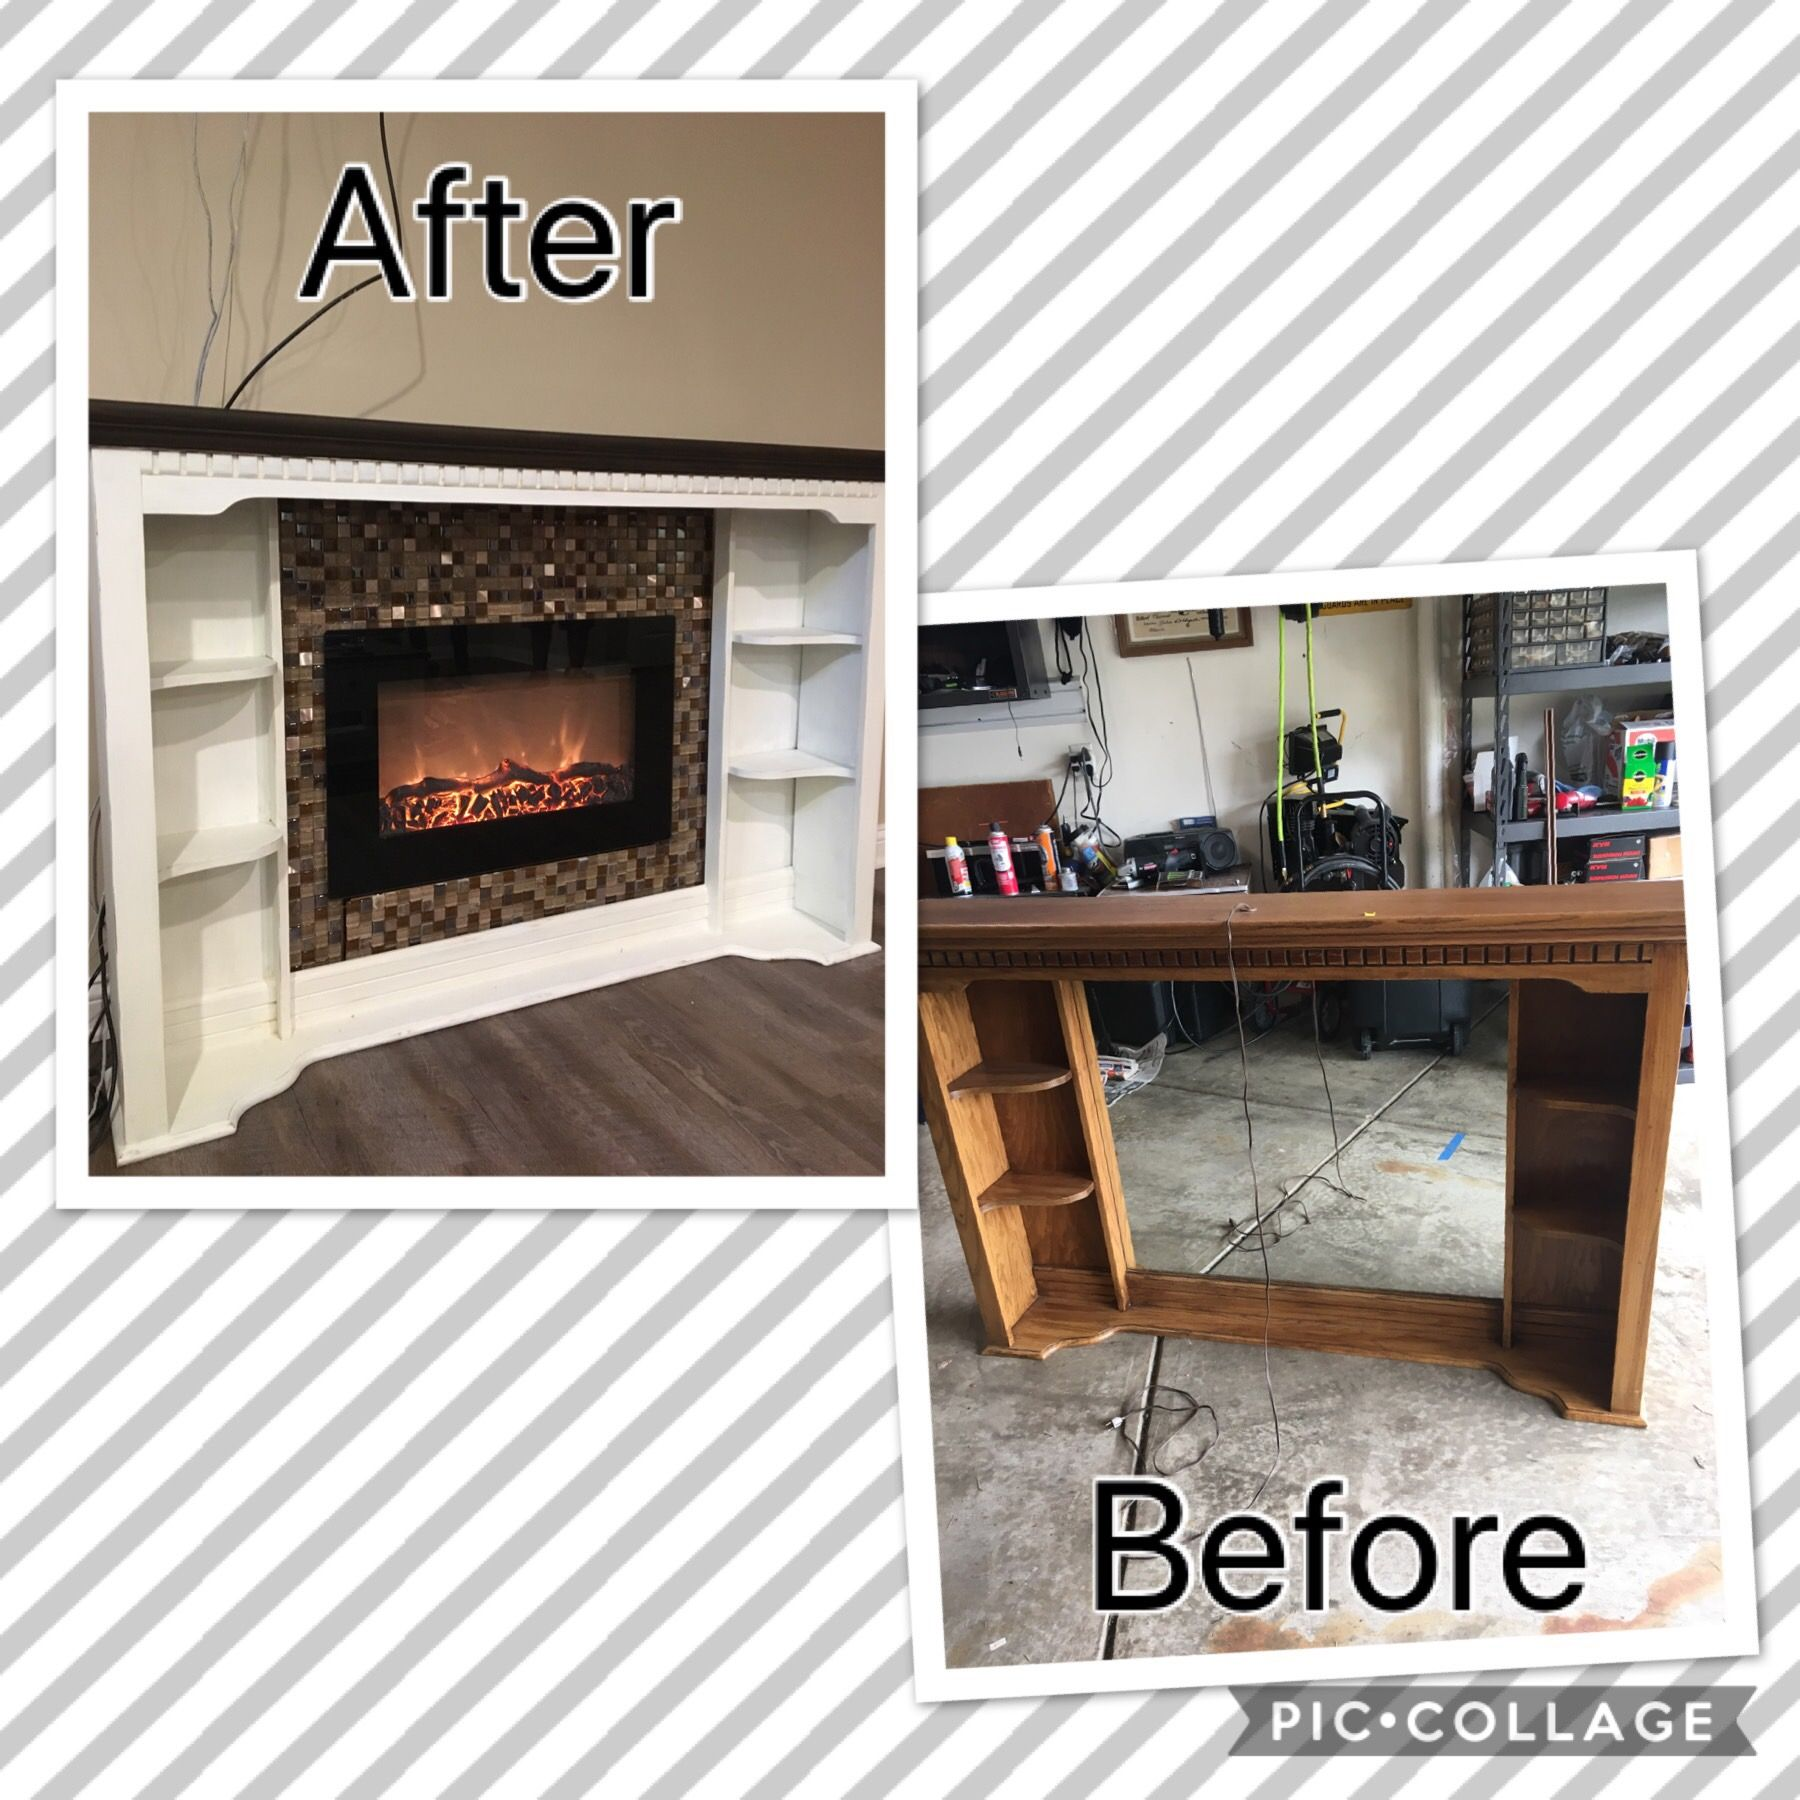 Dresser Top Converted Into A Fireplace Bought This Old Chest Of